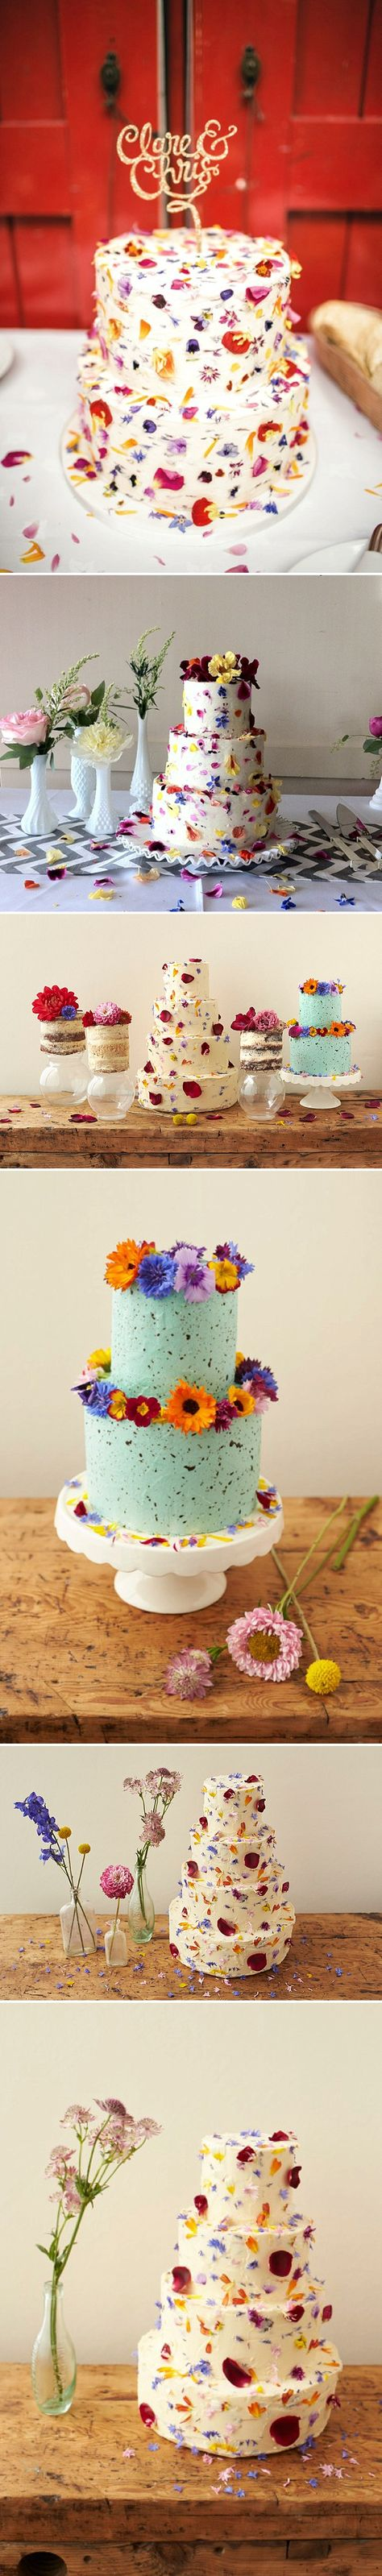 How To Decorate A Wedding Or Celebration Cake With Edible Petals - Bee's Bakery